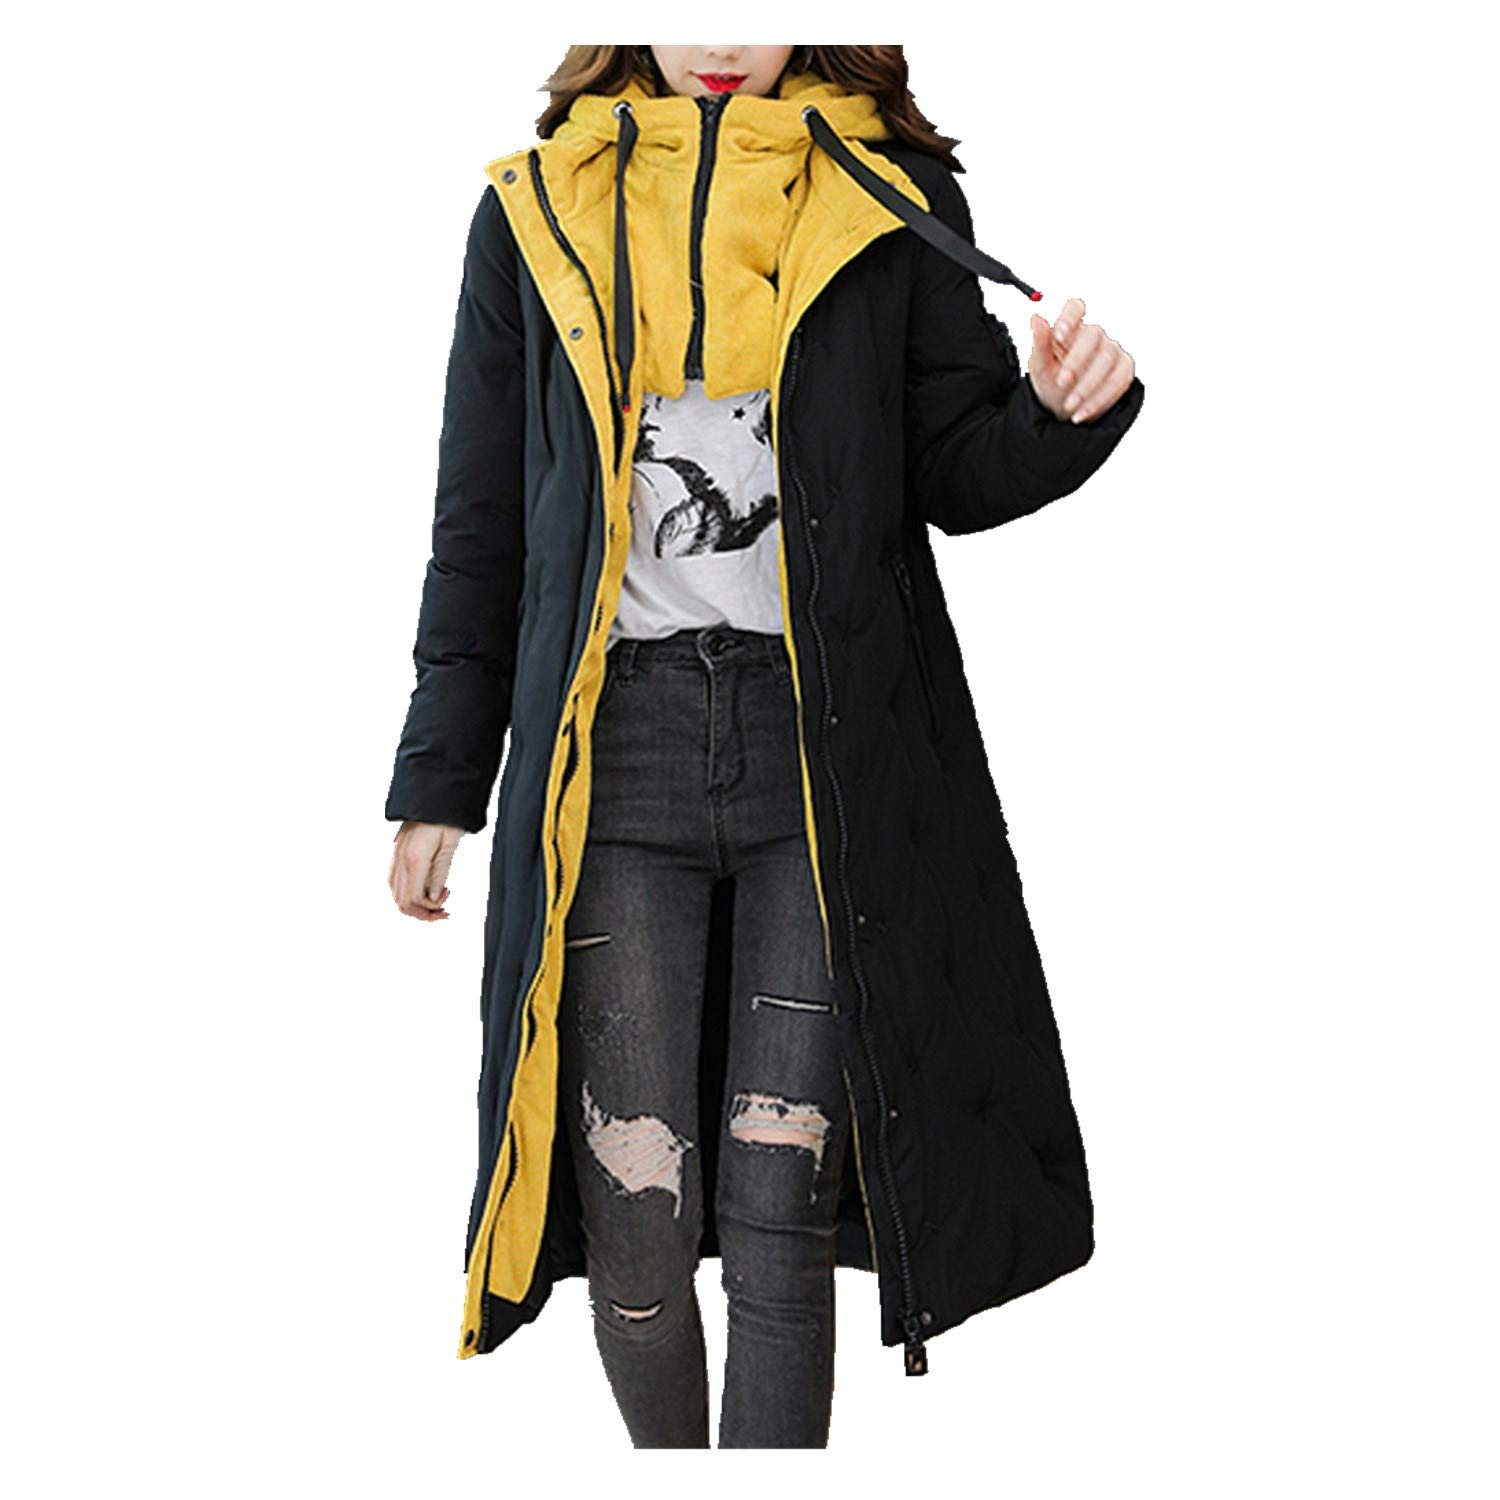 Spring Color  Womens Winter Long Sleeve Coat Hooded Thicken Zipper Button Warm Jacket Pocket Long Overcoat Outwear Black by 🍒 Spring Color 🍒